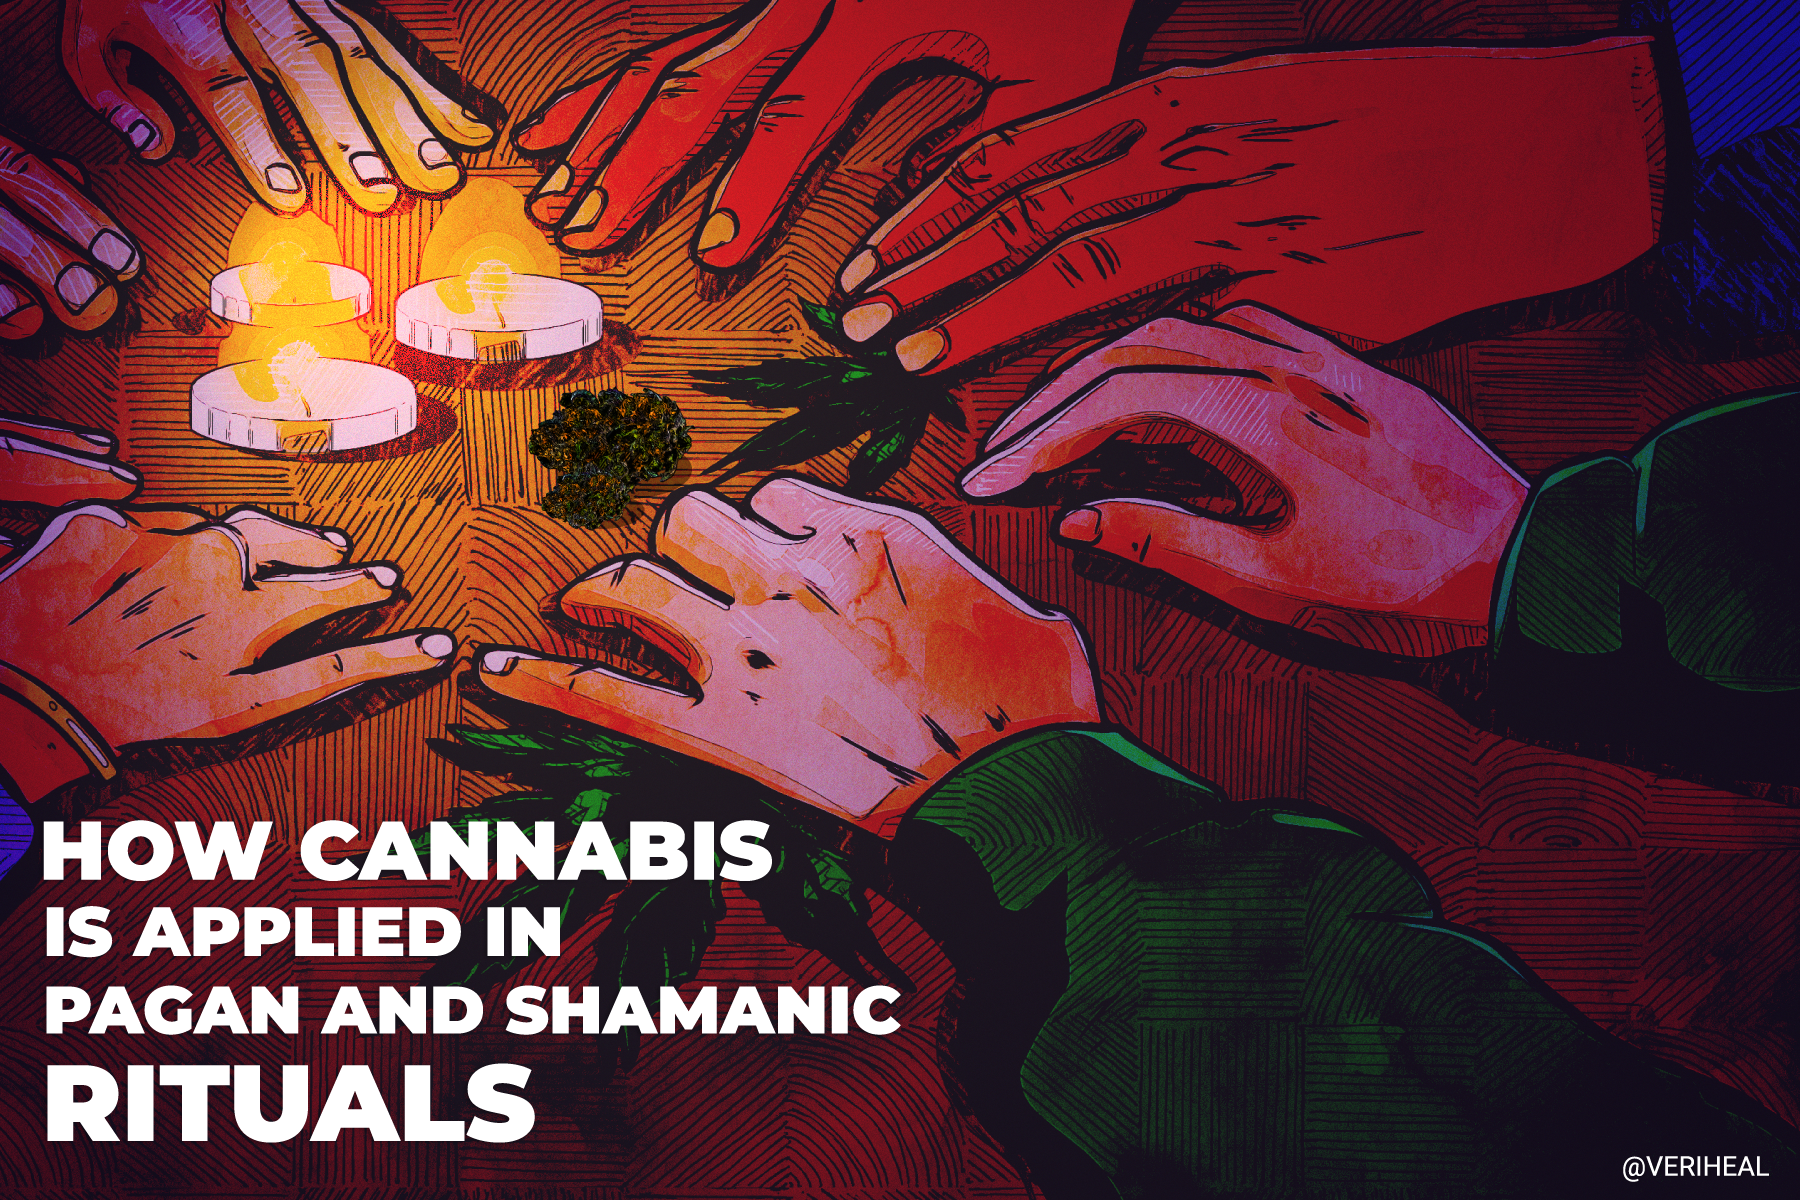 How Cannabis Is Applied in Pagan and Shamanic Rituals